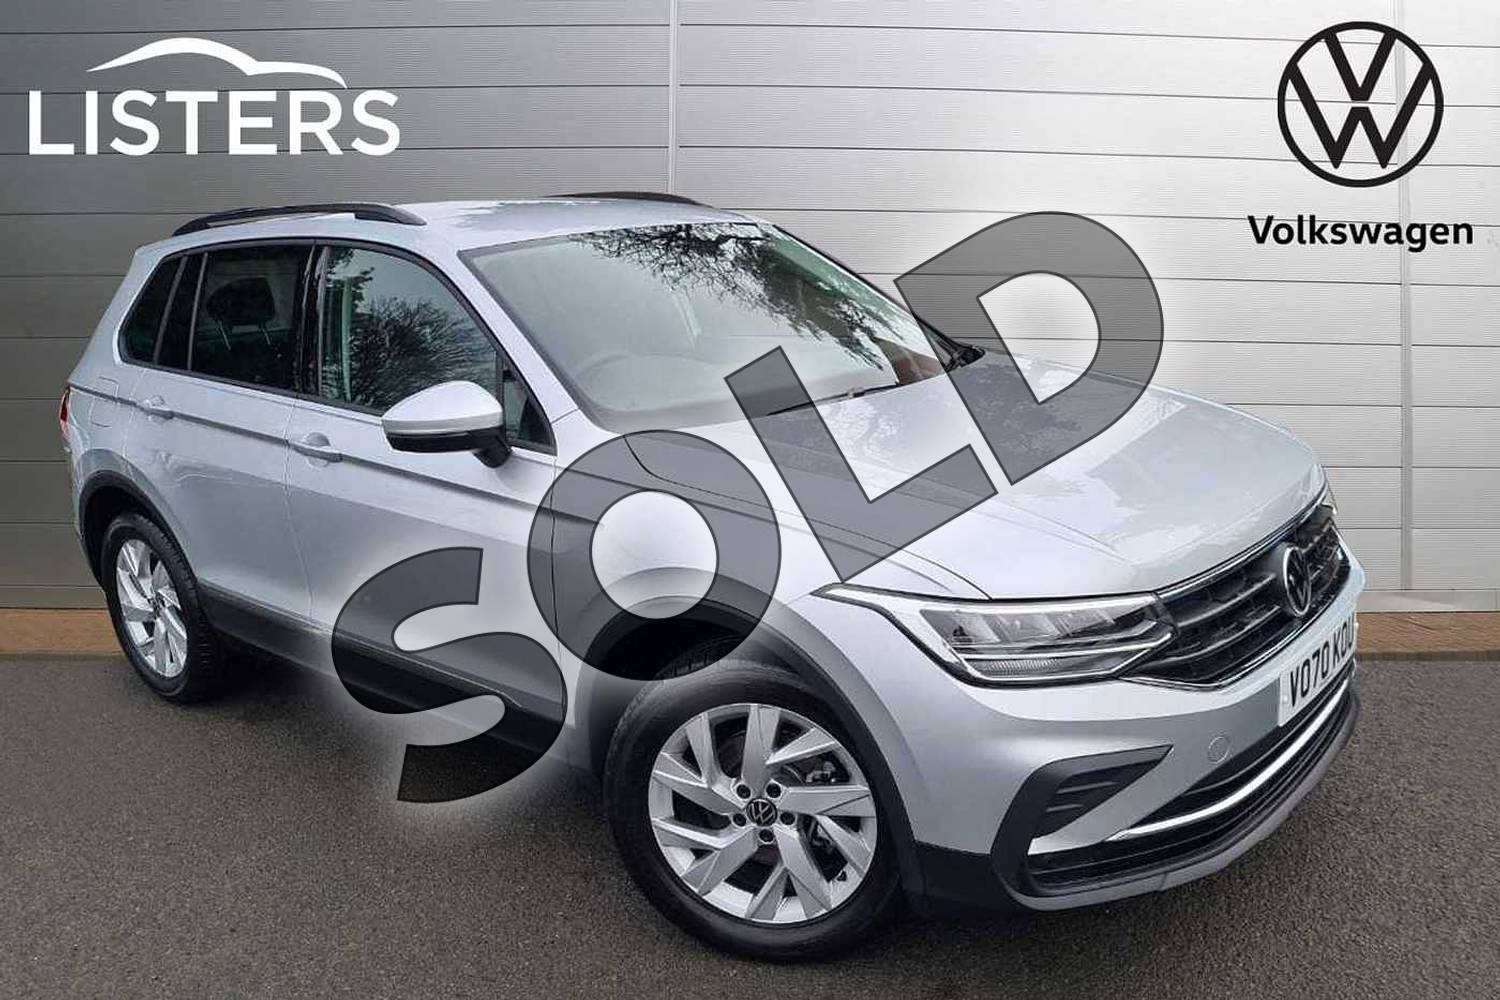 2021 Volkswagen Tiguan Estate 1.5 TSI 150 Life 5dr DSG in Silver at Listers Volkswagen Worcester